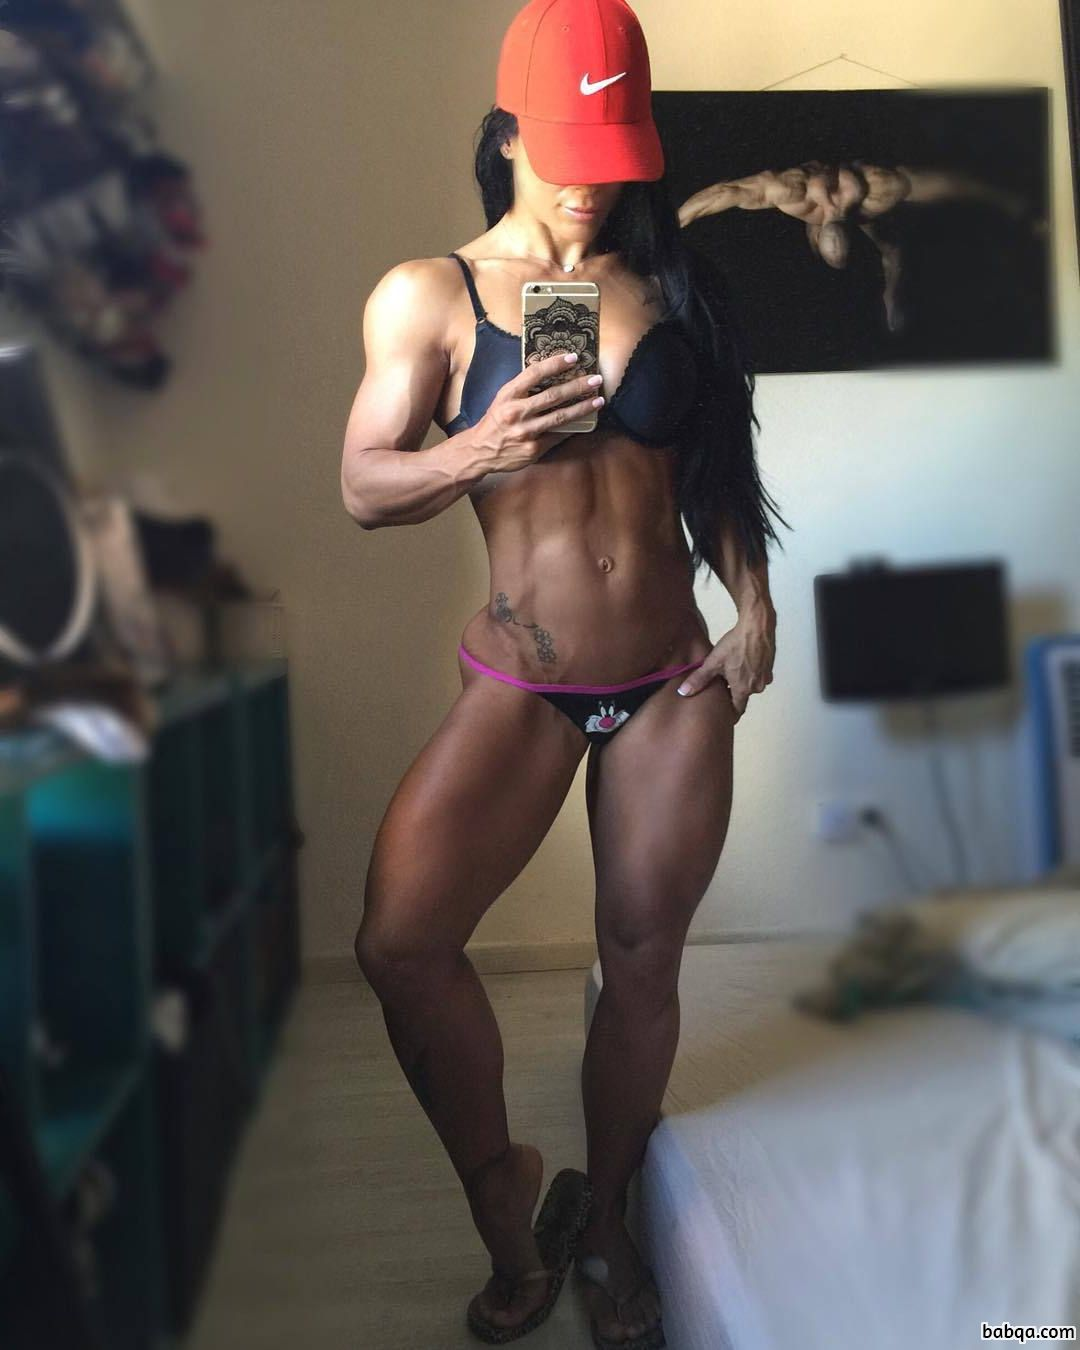 awesome chick with fitness body and muscle legs image from reddit